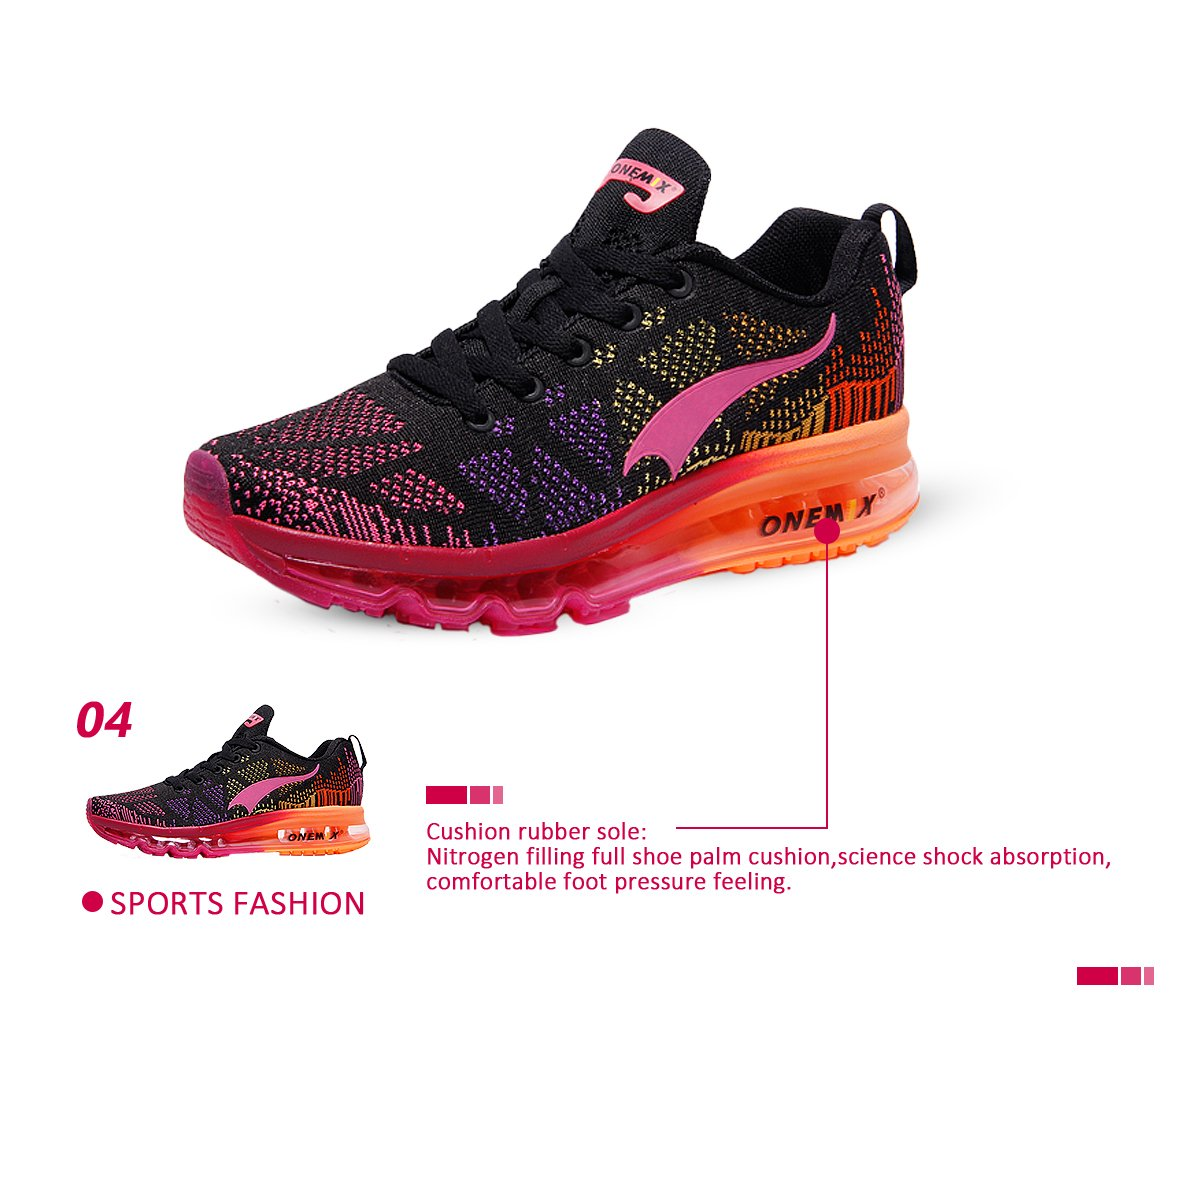 ONEMIX Women's Lightweight Air Cushion Outdoor Women Sport Running Shoes B06ZYF9PND Women Outdoor 8(M)US/Men 6.5(M)US 39EU|Black Red 0919da